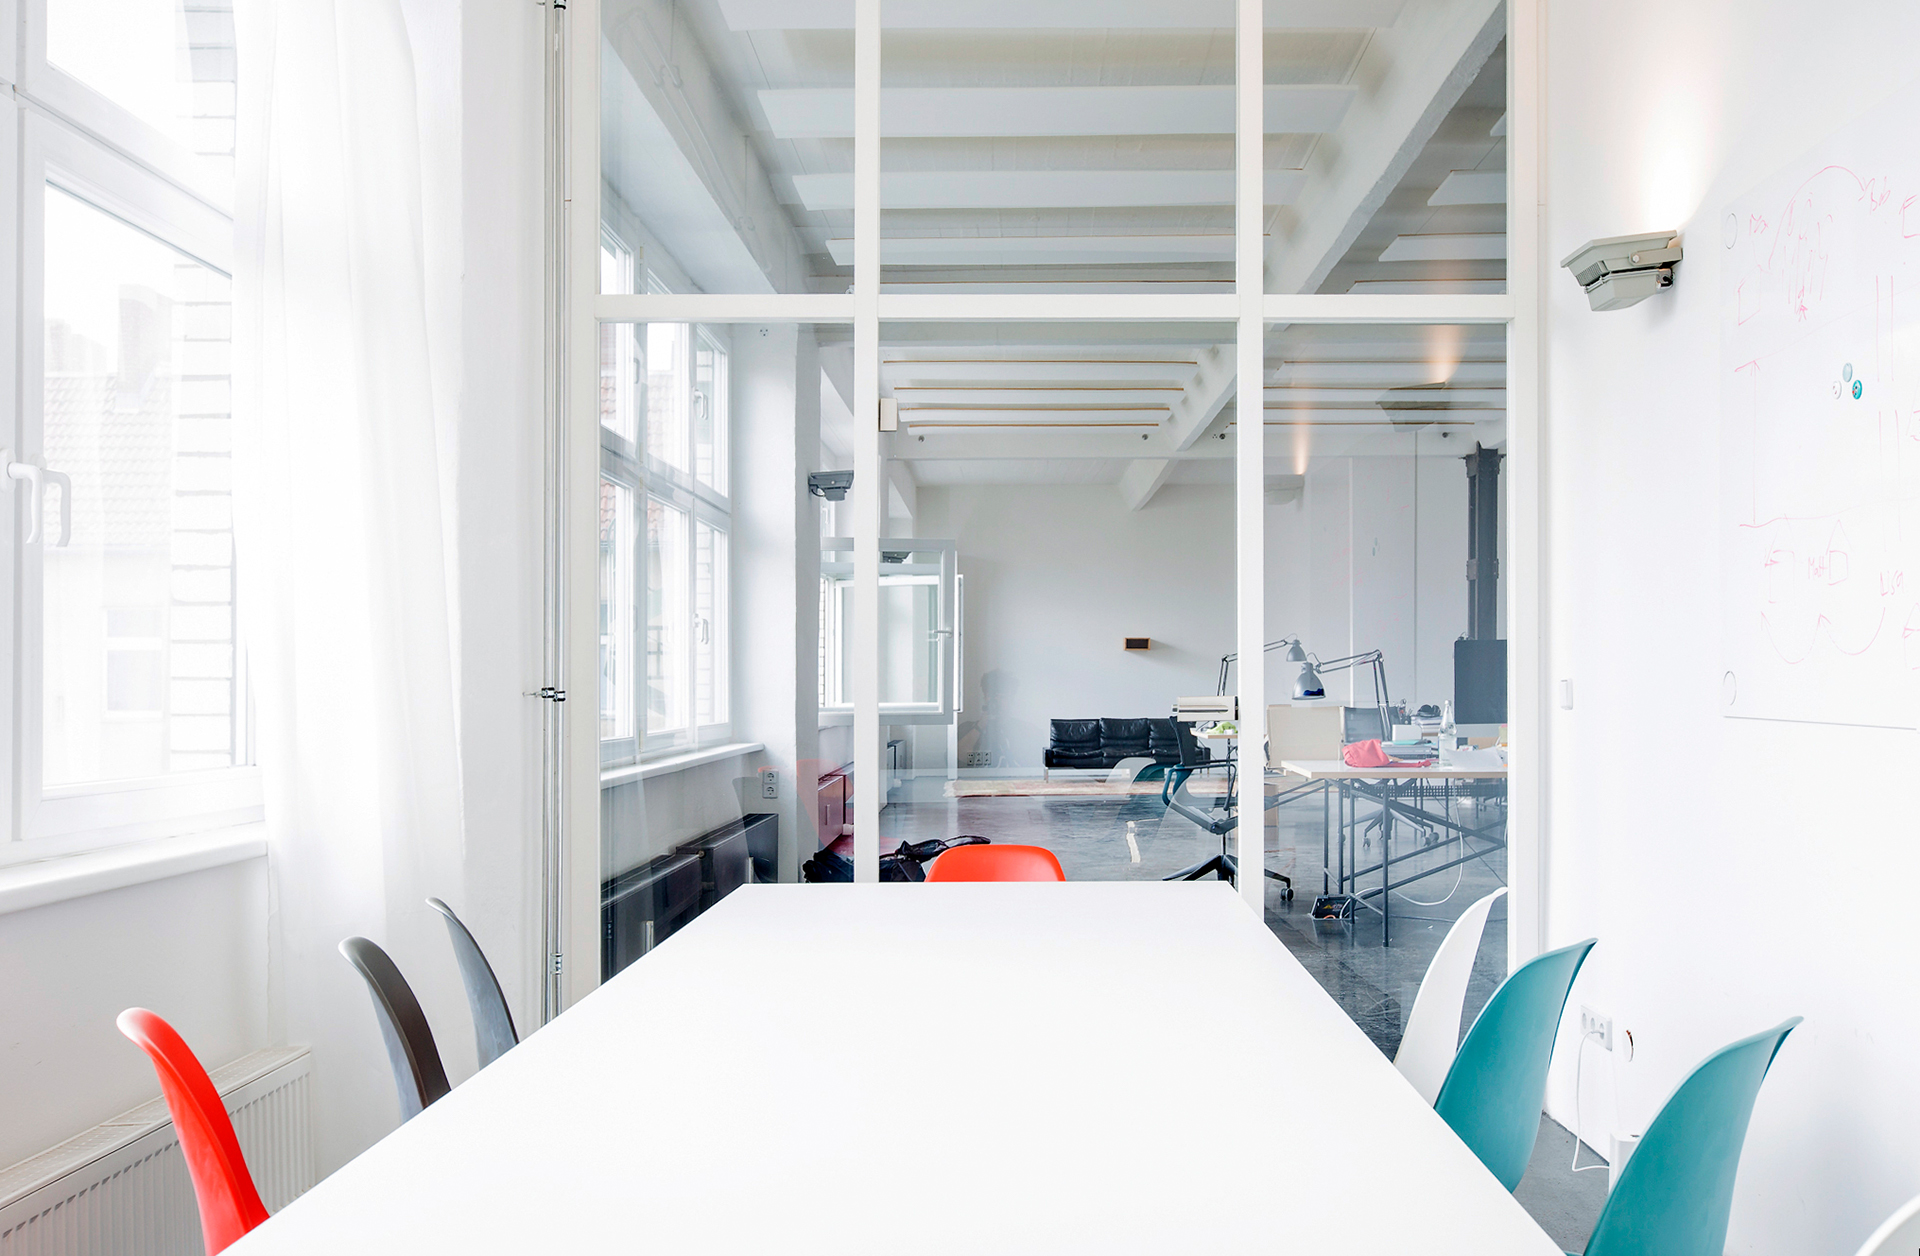 A Color Bright   OFFICE DESIGN I GLASS WALL I MEETING ROOM